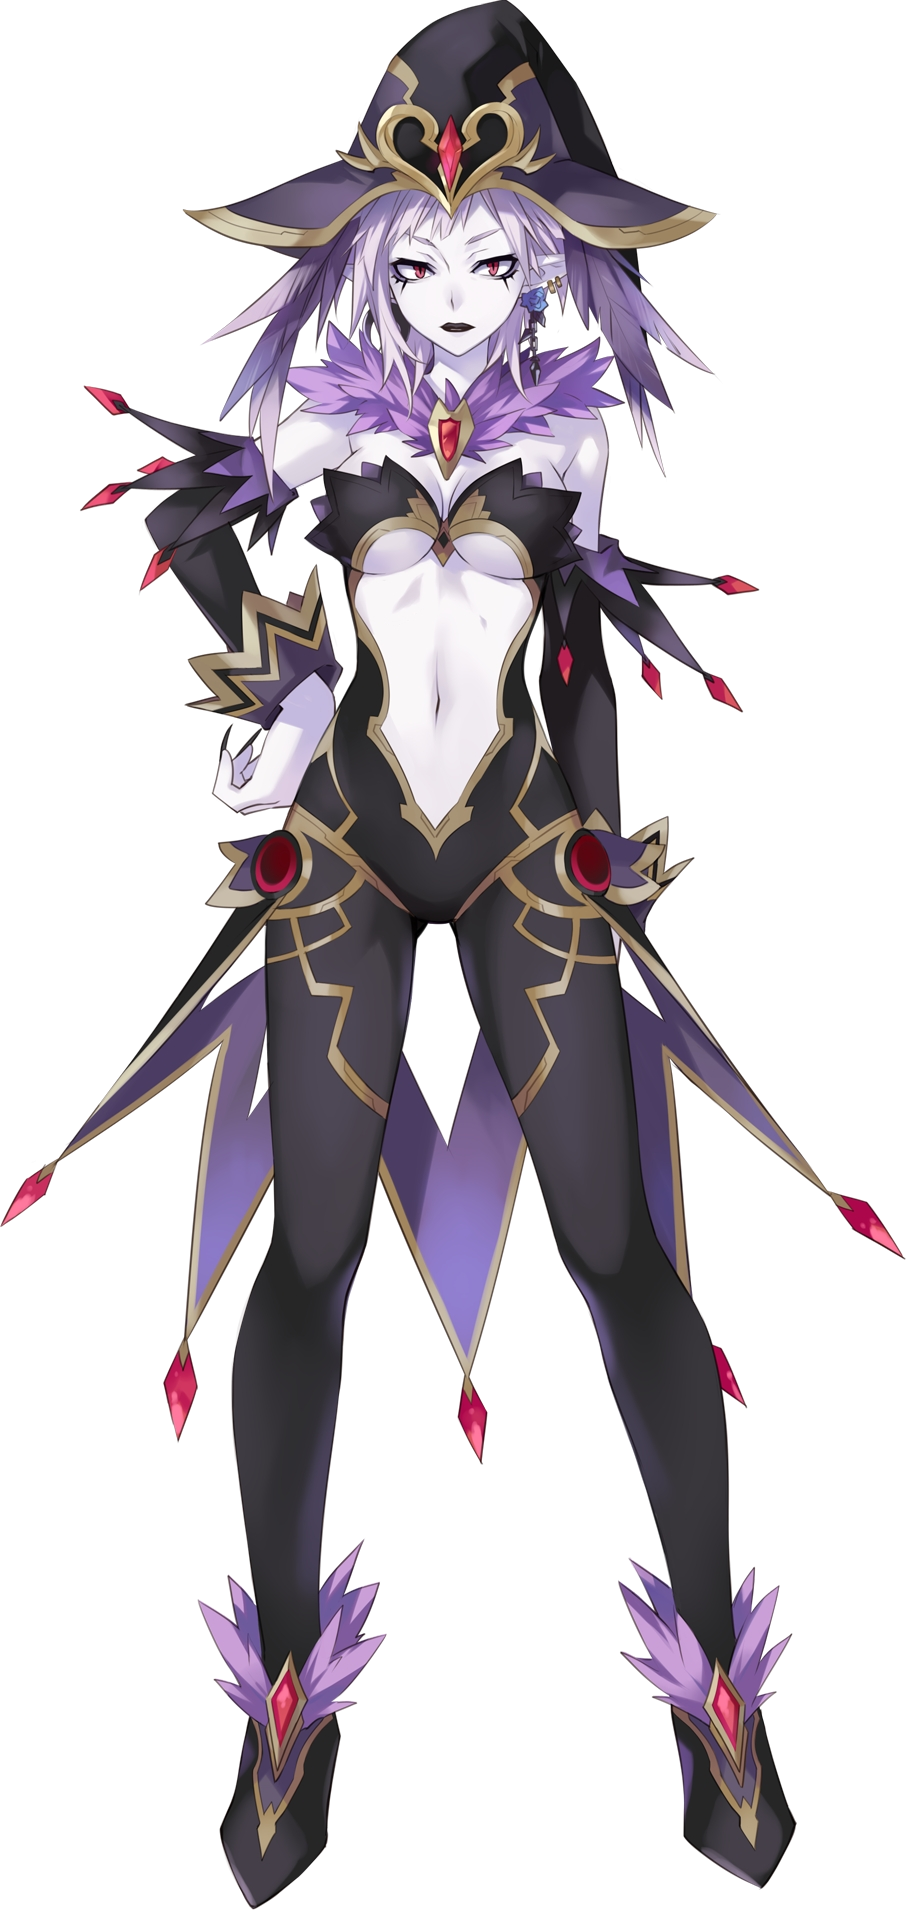 Wild arms png. Image arfoire victory hyperdimension